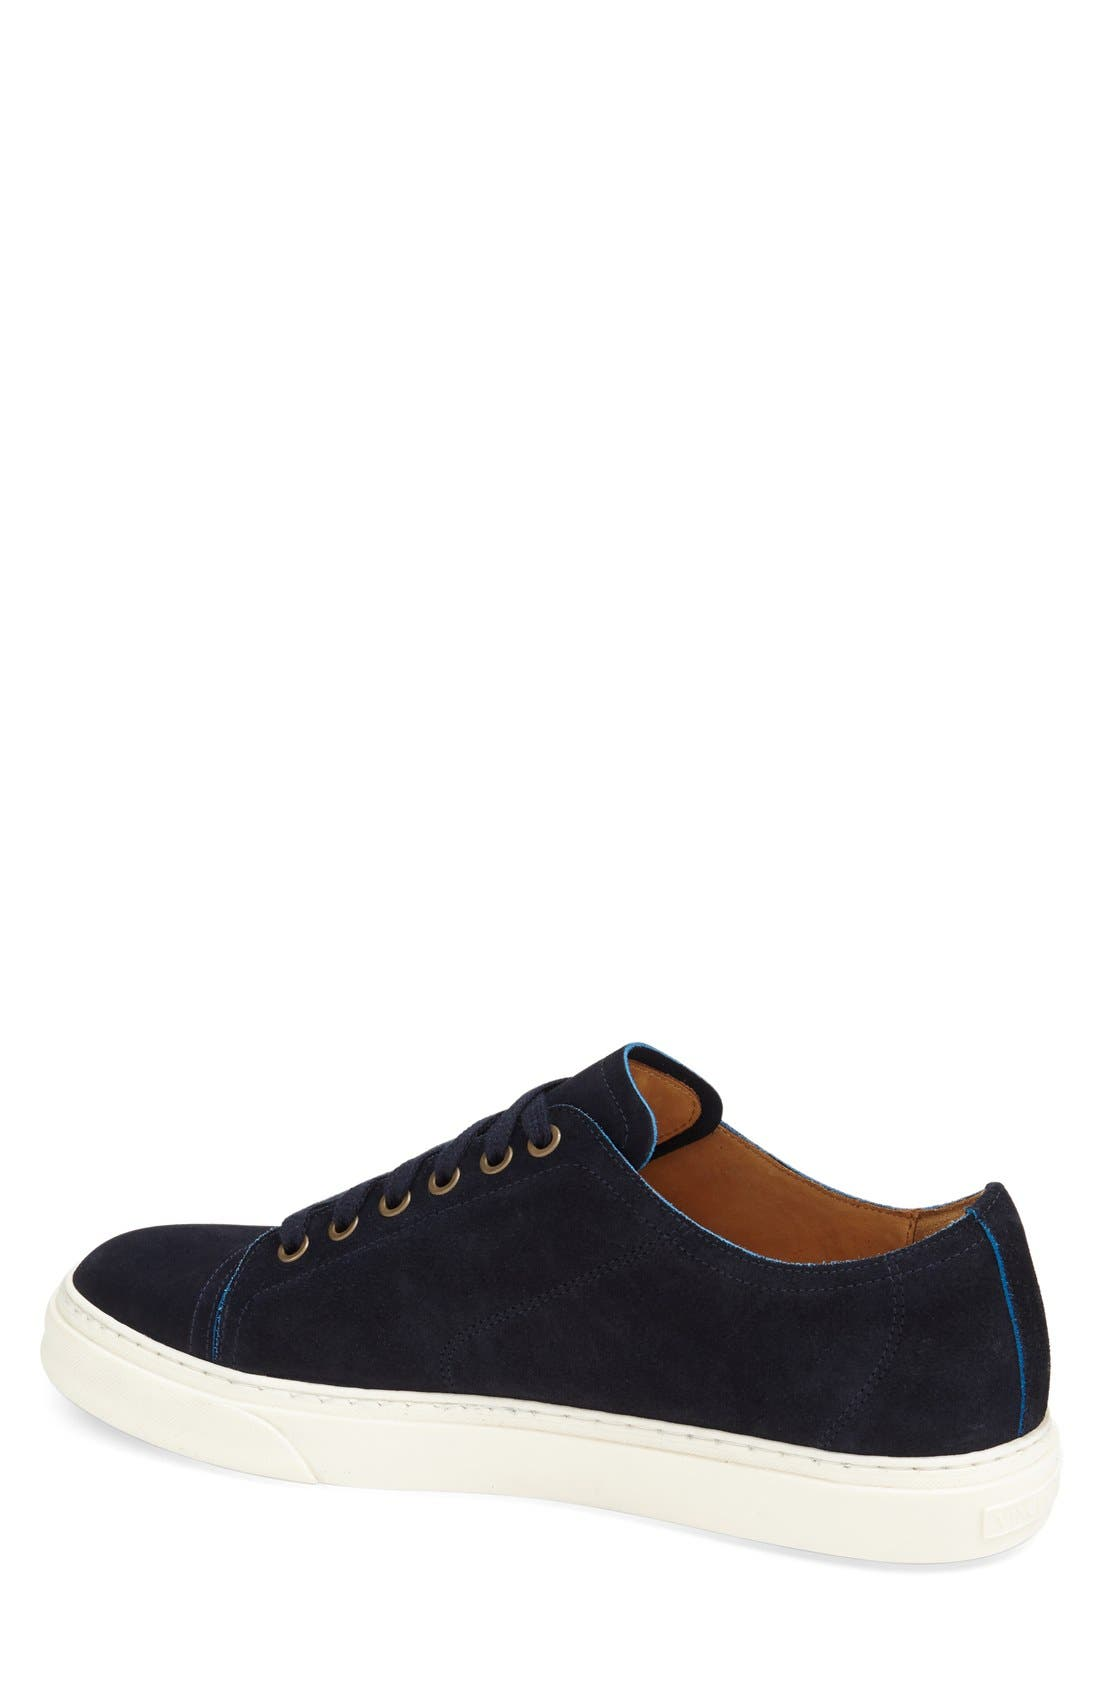 'Quort' Sneaker,                             Alternate thumbnail 2, color,                             Navy Suede